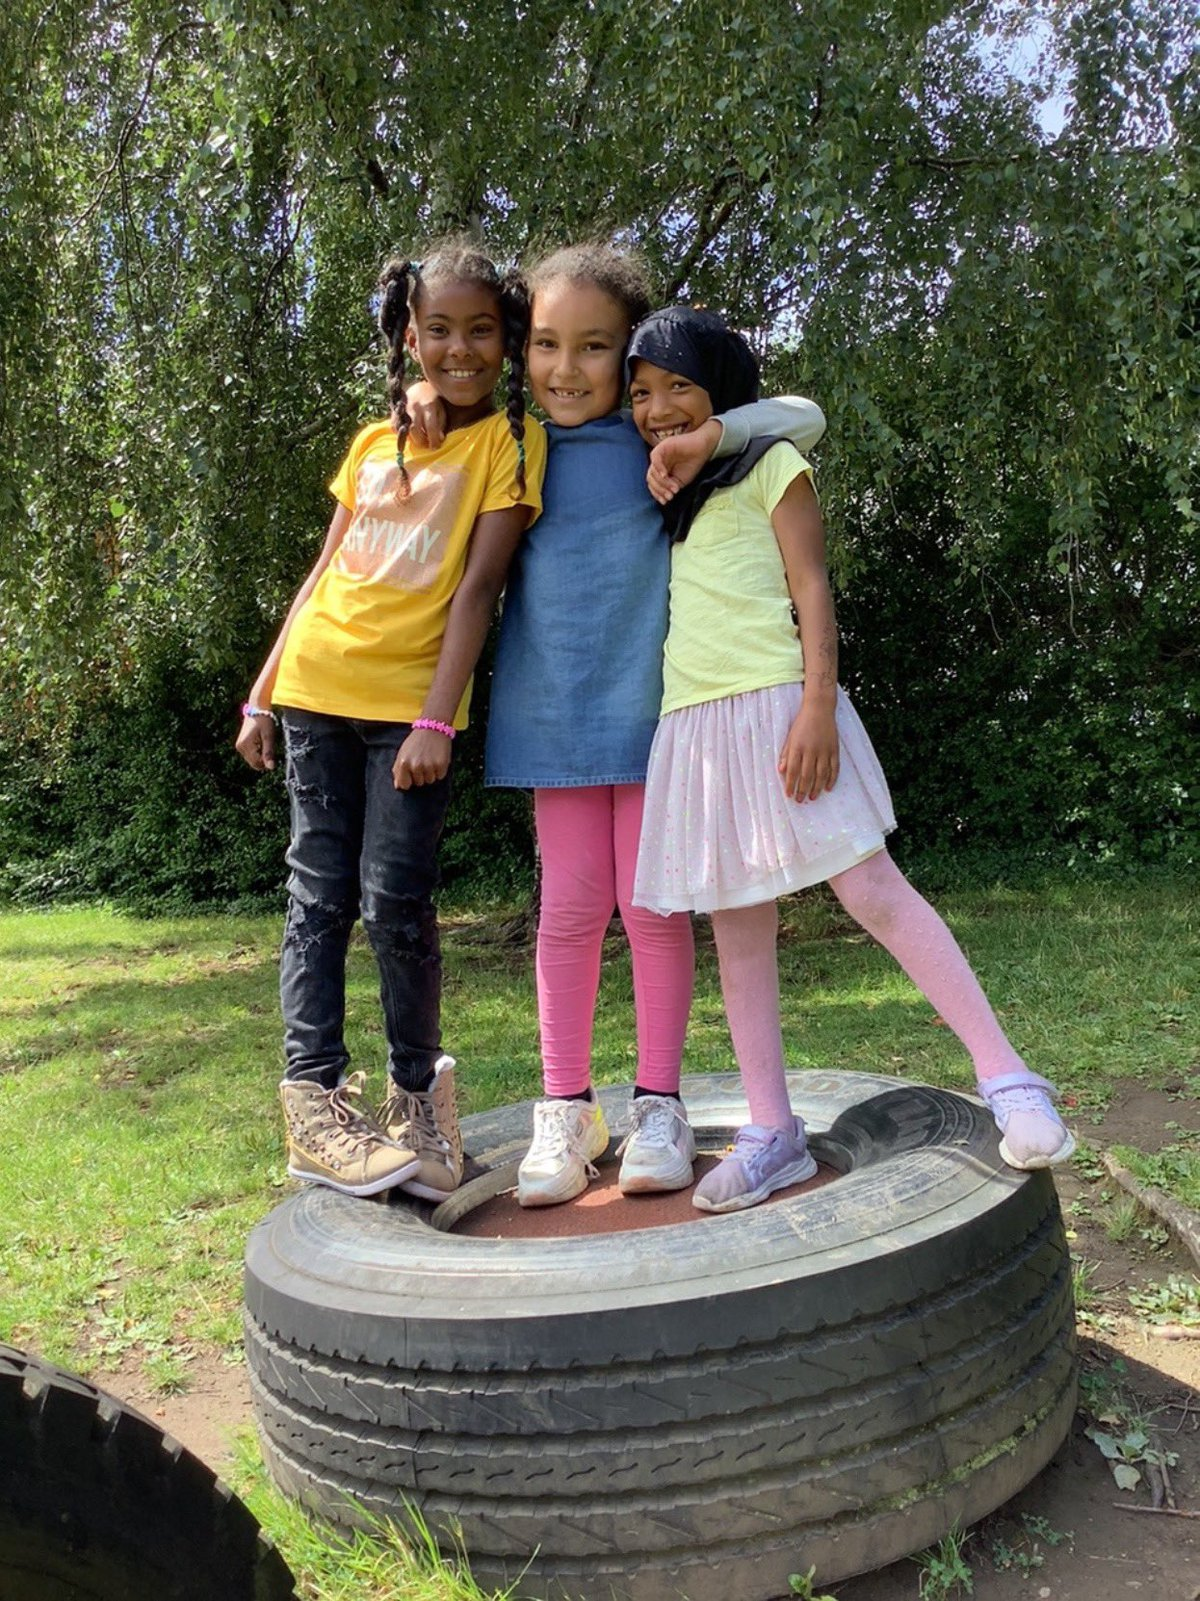 Pupils at St Mary's primary school standing on a tyre